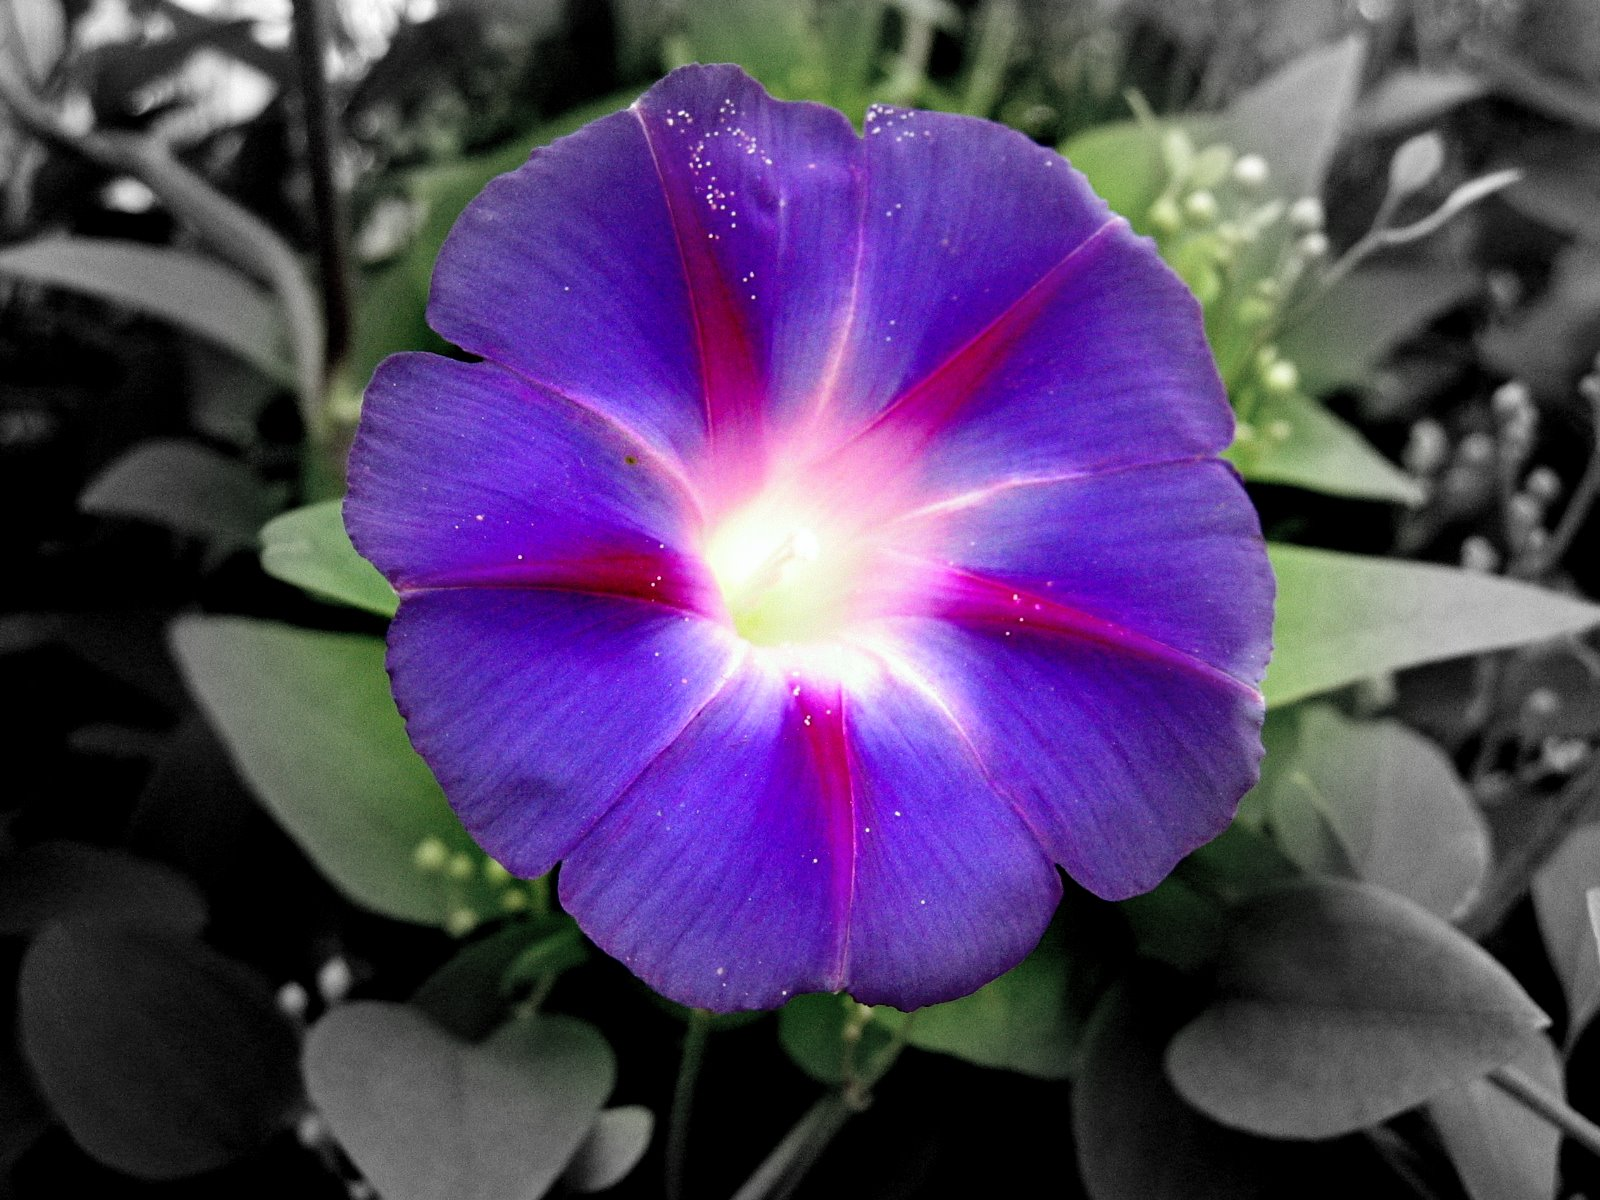 Flowers for flower lovers morning glory flowers pictures history morning izmirmasajfo